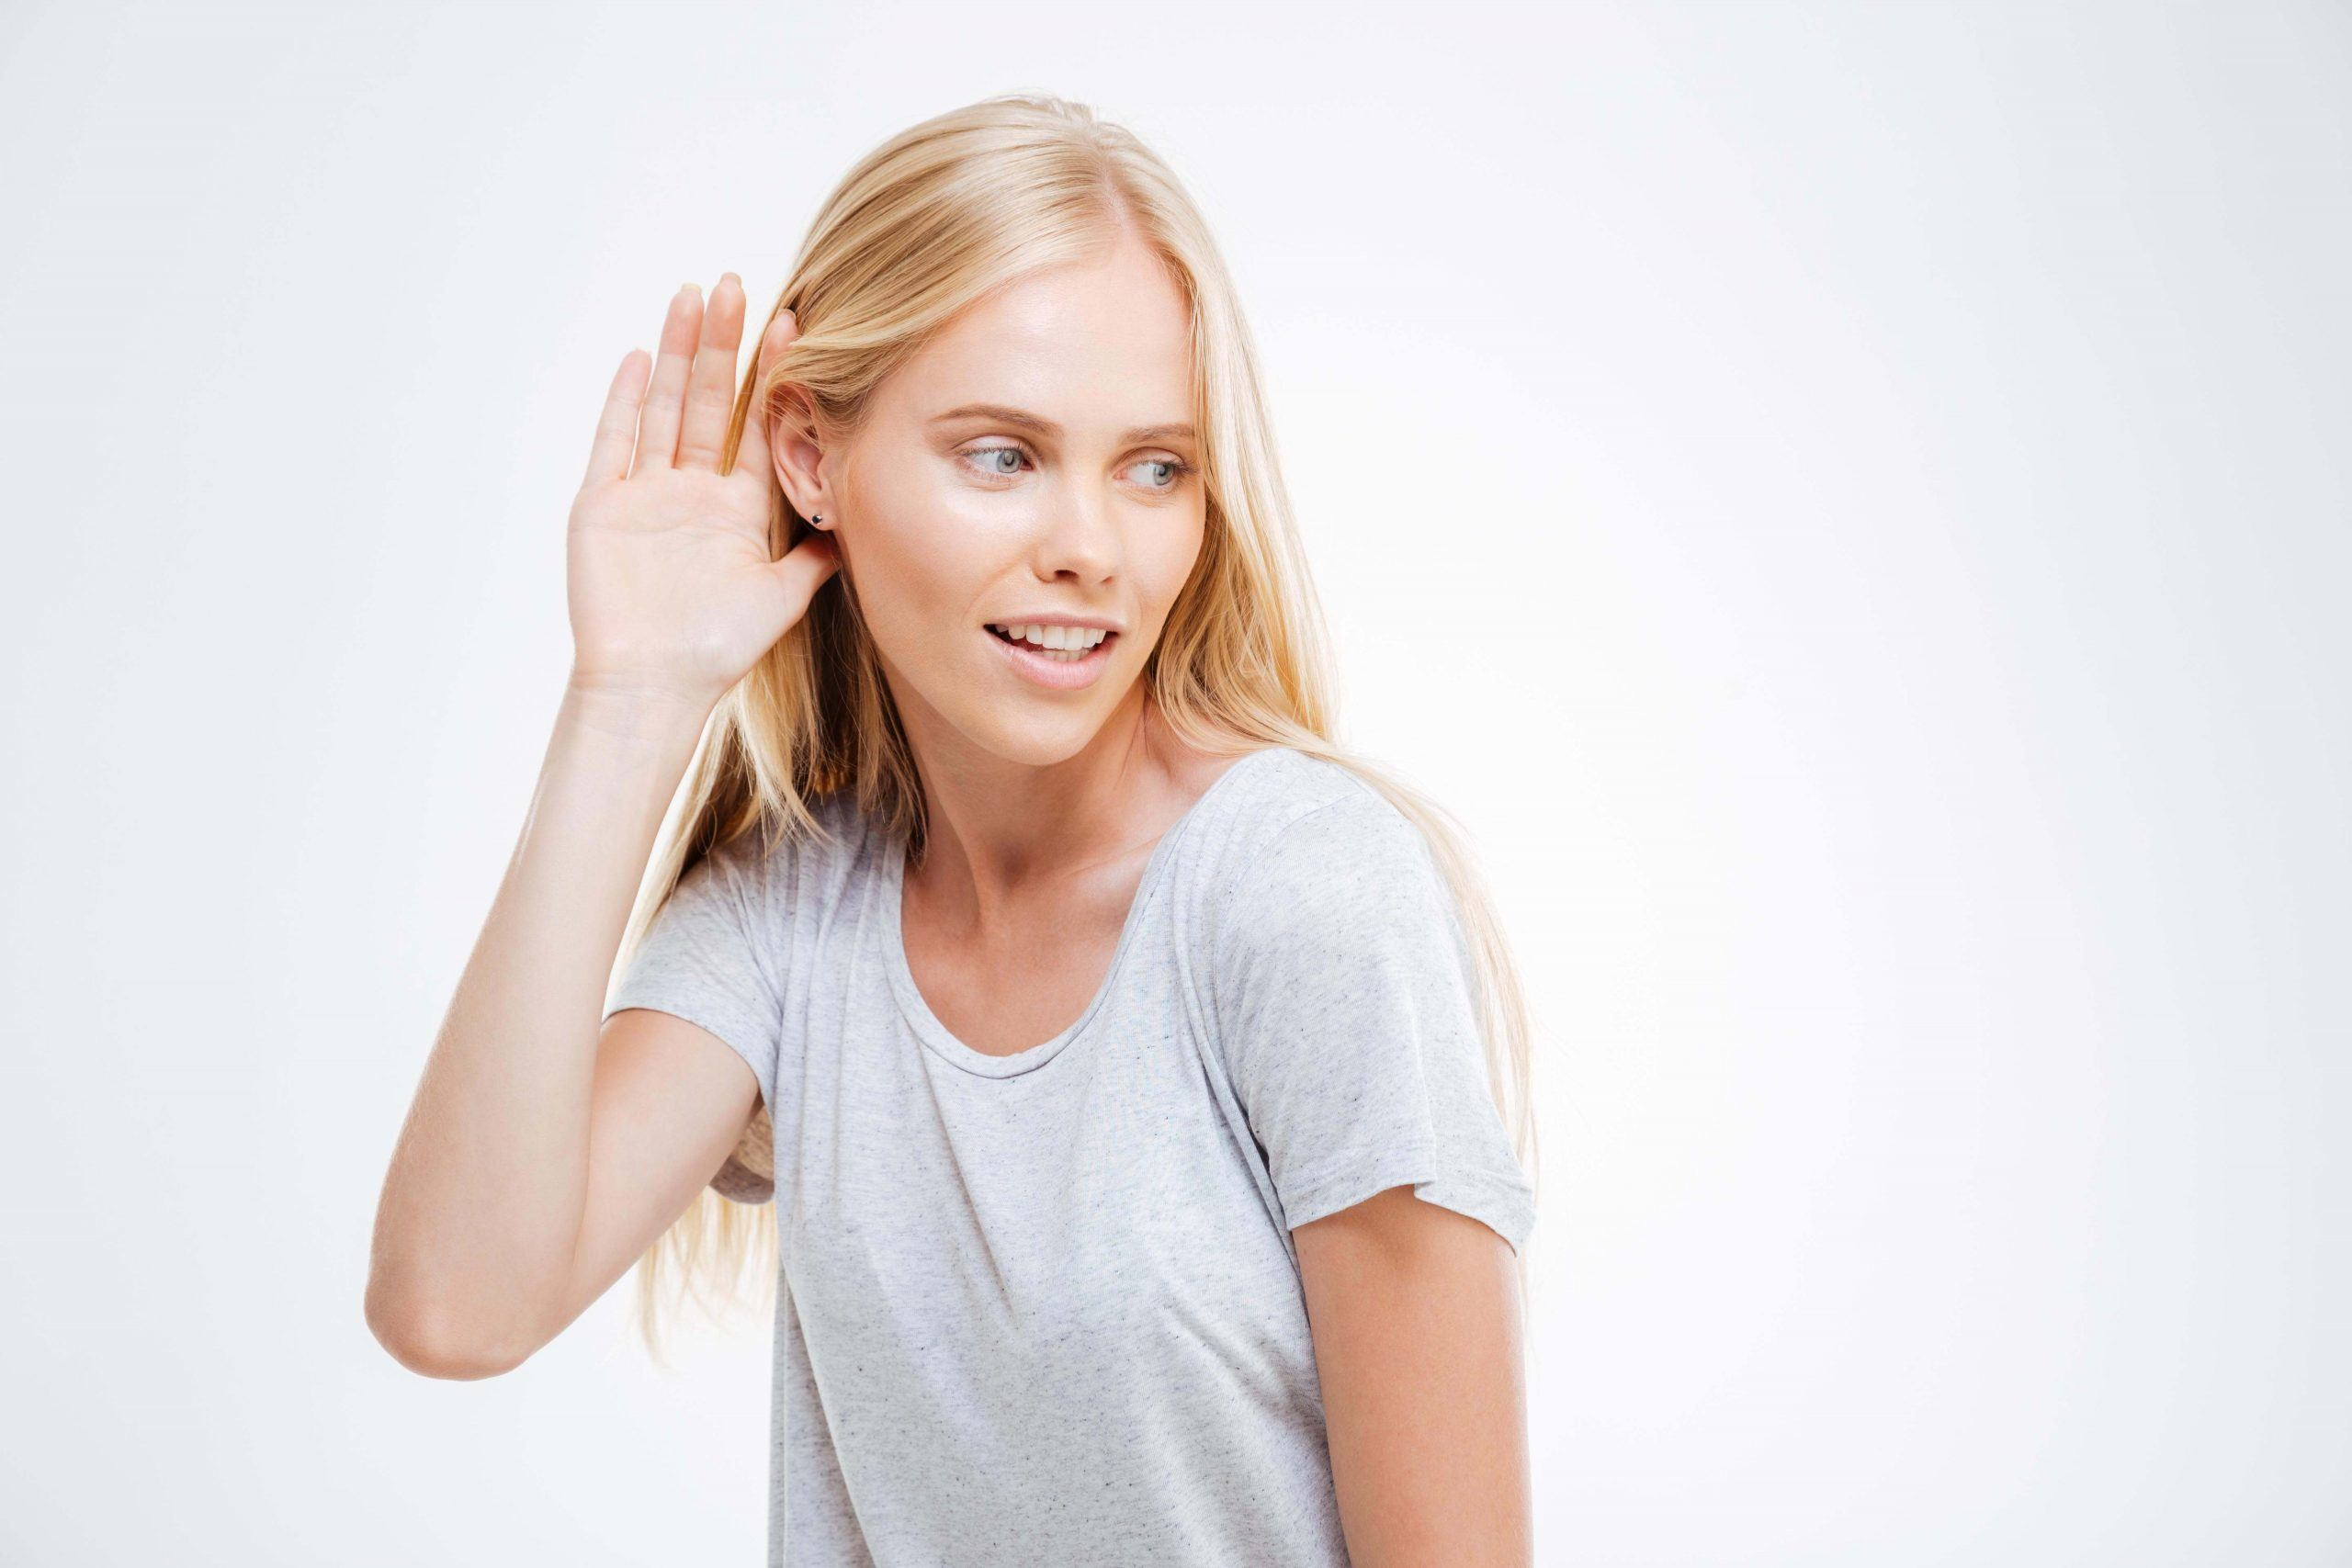 beautiful-blonde-woman-with-hand-at-the-ear-to-hear-better-isolated-on-a-white-background